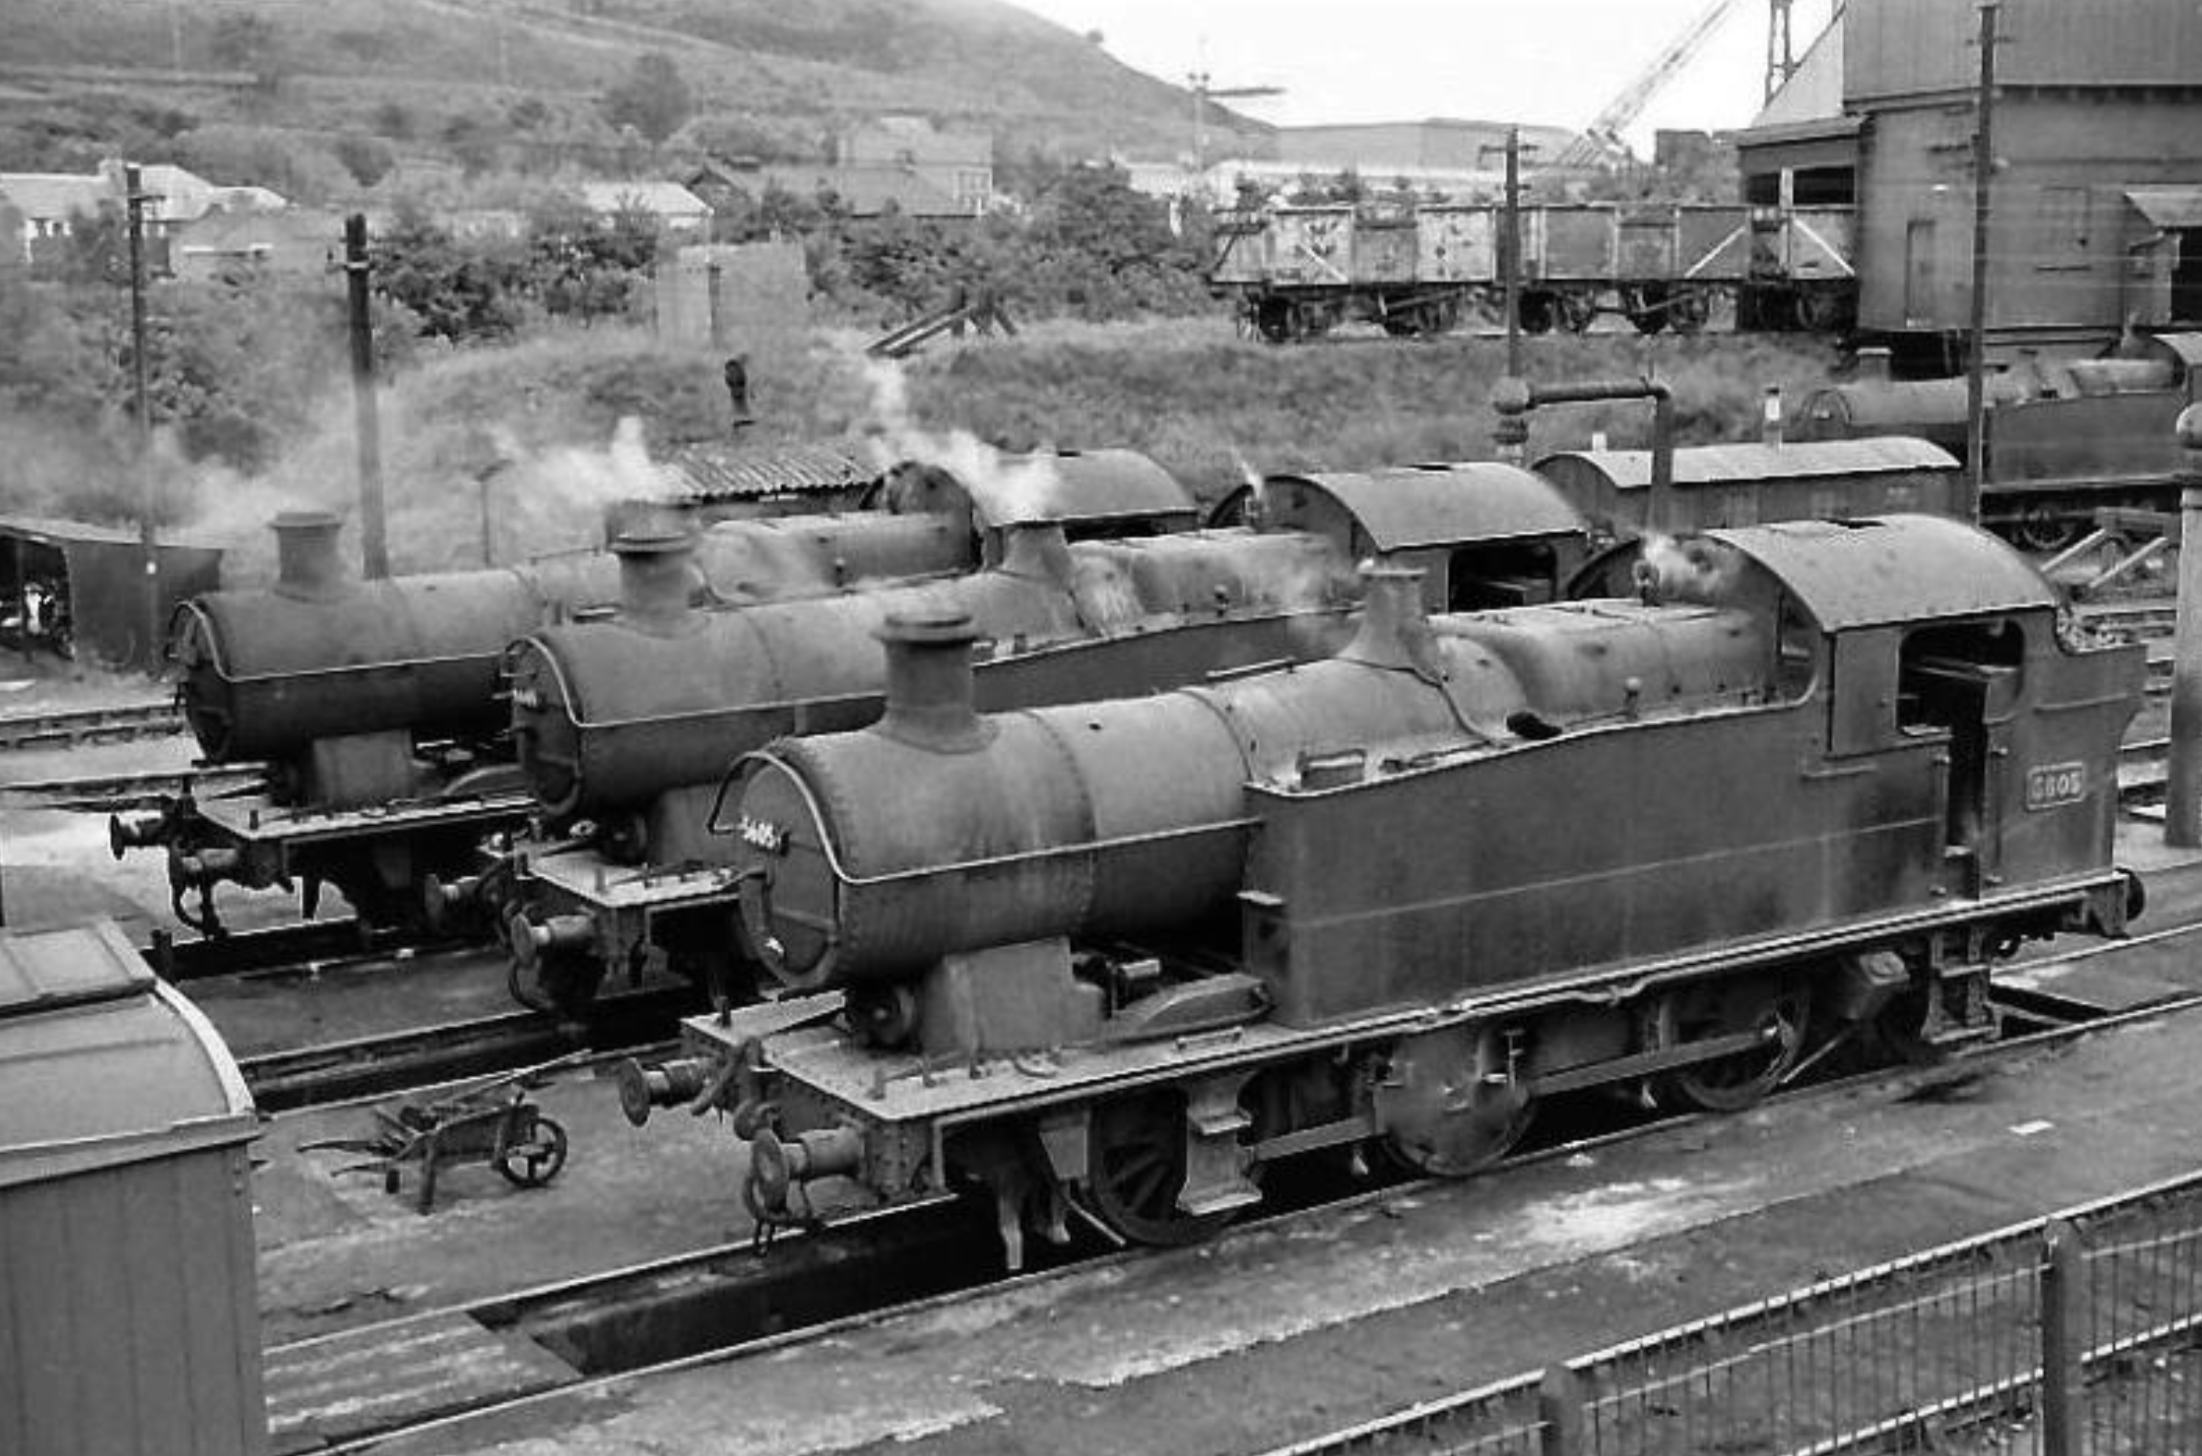 Classic Valleys tank engines, ex-GWR 56XX and 66XX 0-6-2 Classes nos. 5601, 6649 and 5605, on shed at Abercynon in the 1960s. Photograph used with thanks but source unknown [Facebook]